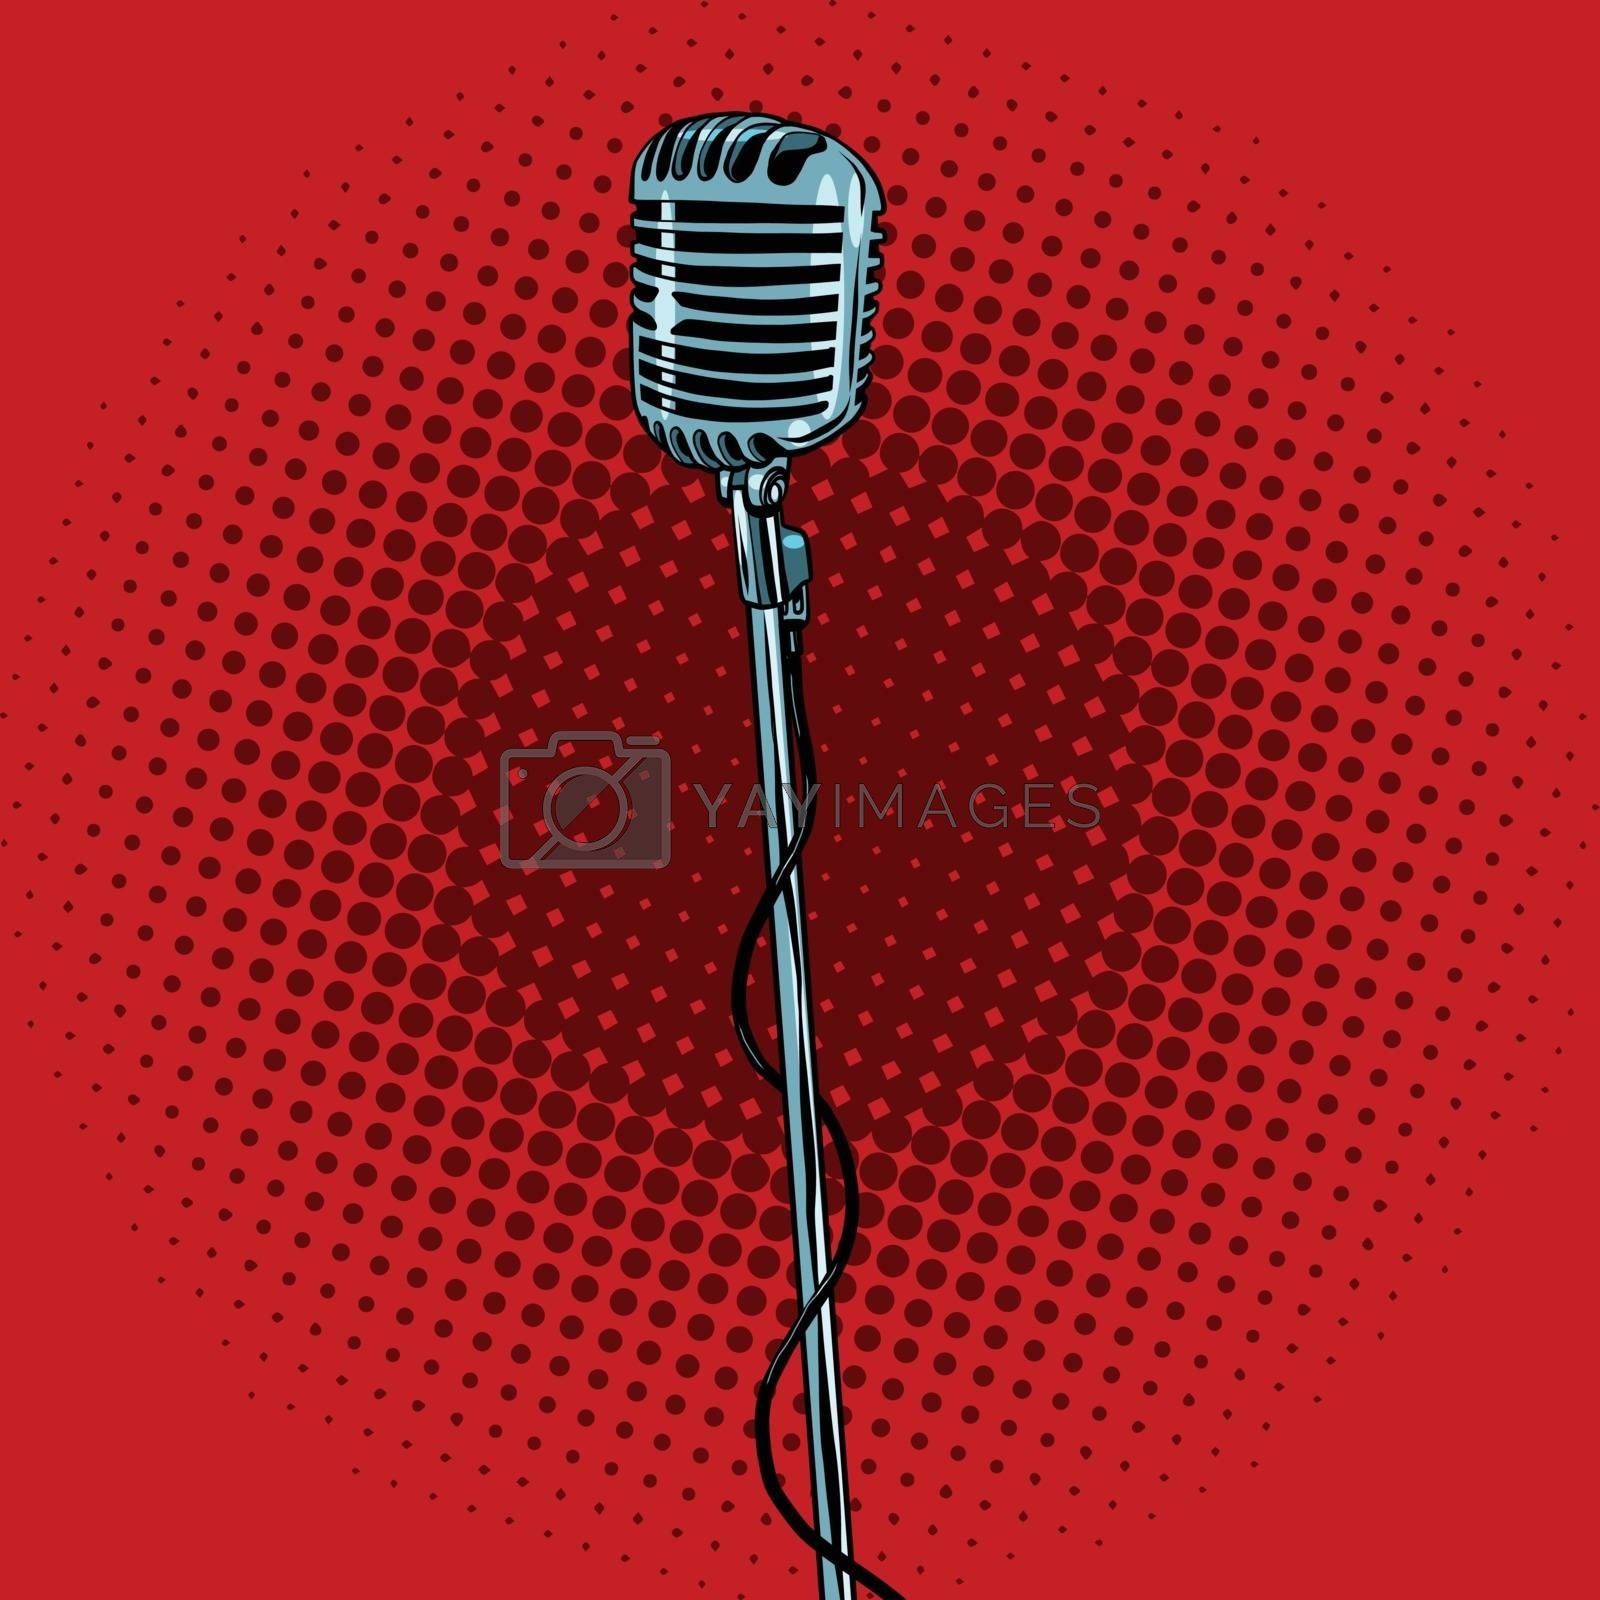 retro microphone and stand, pop art vector illustration. Music and concert